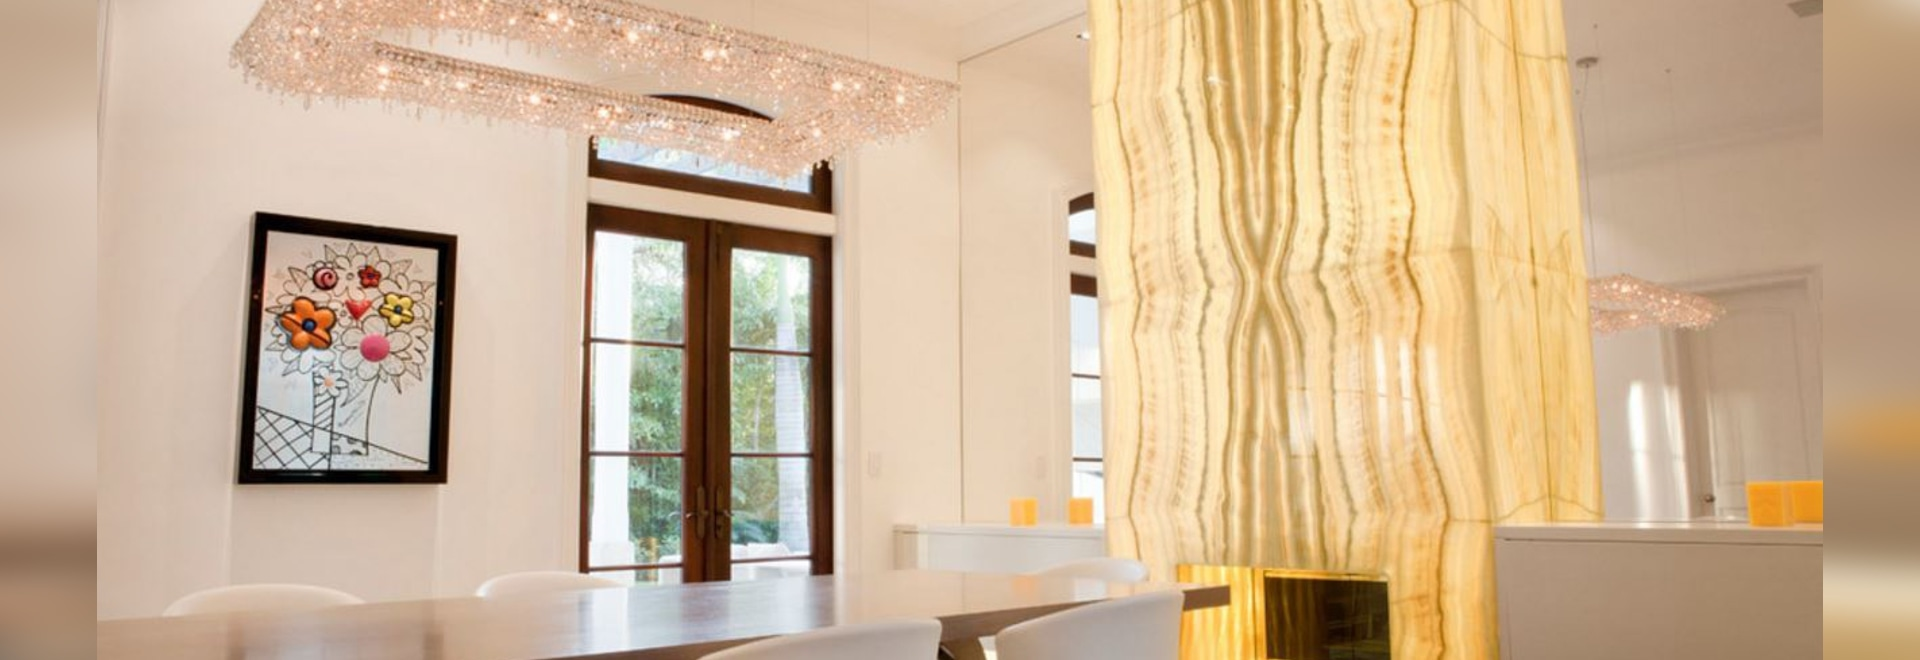 Artikoi and Fjord crystal chandelier in a private residence